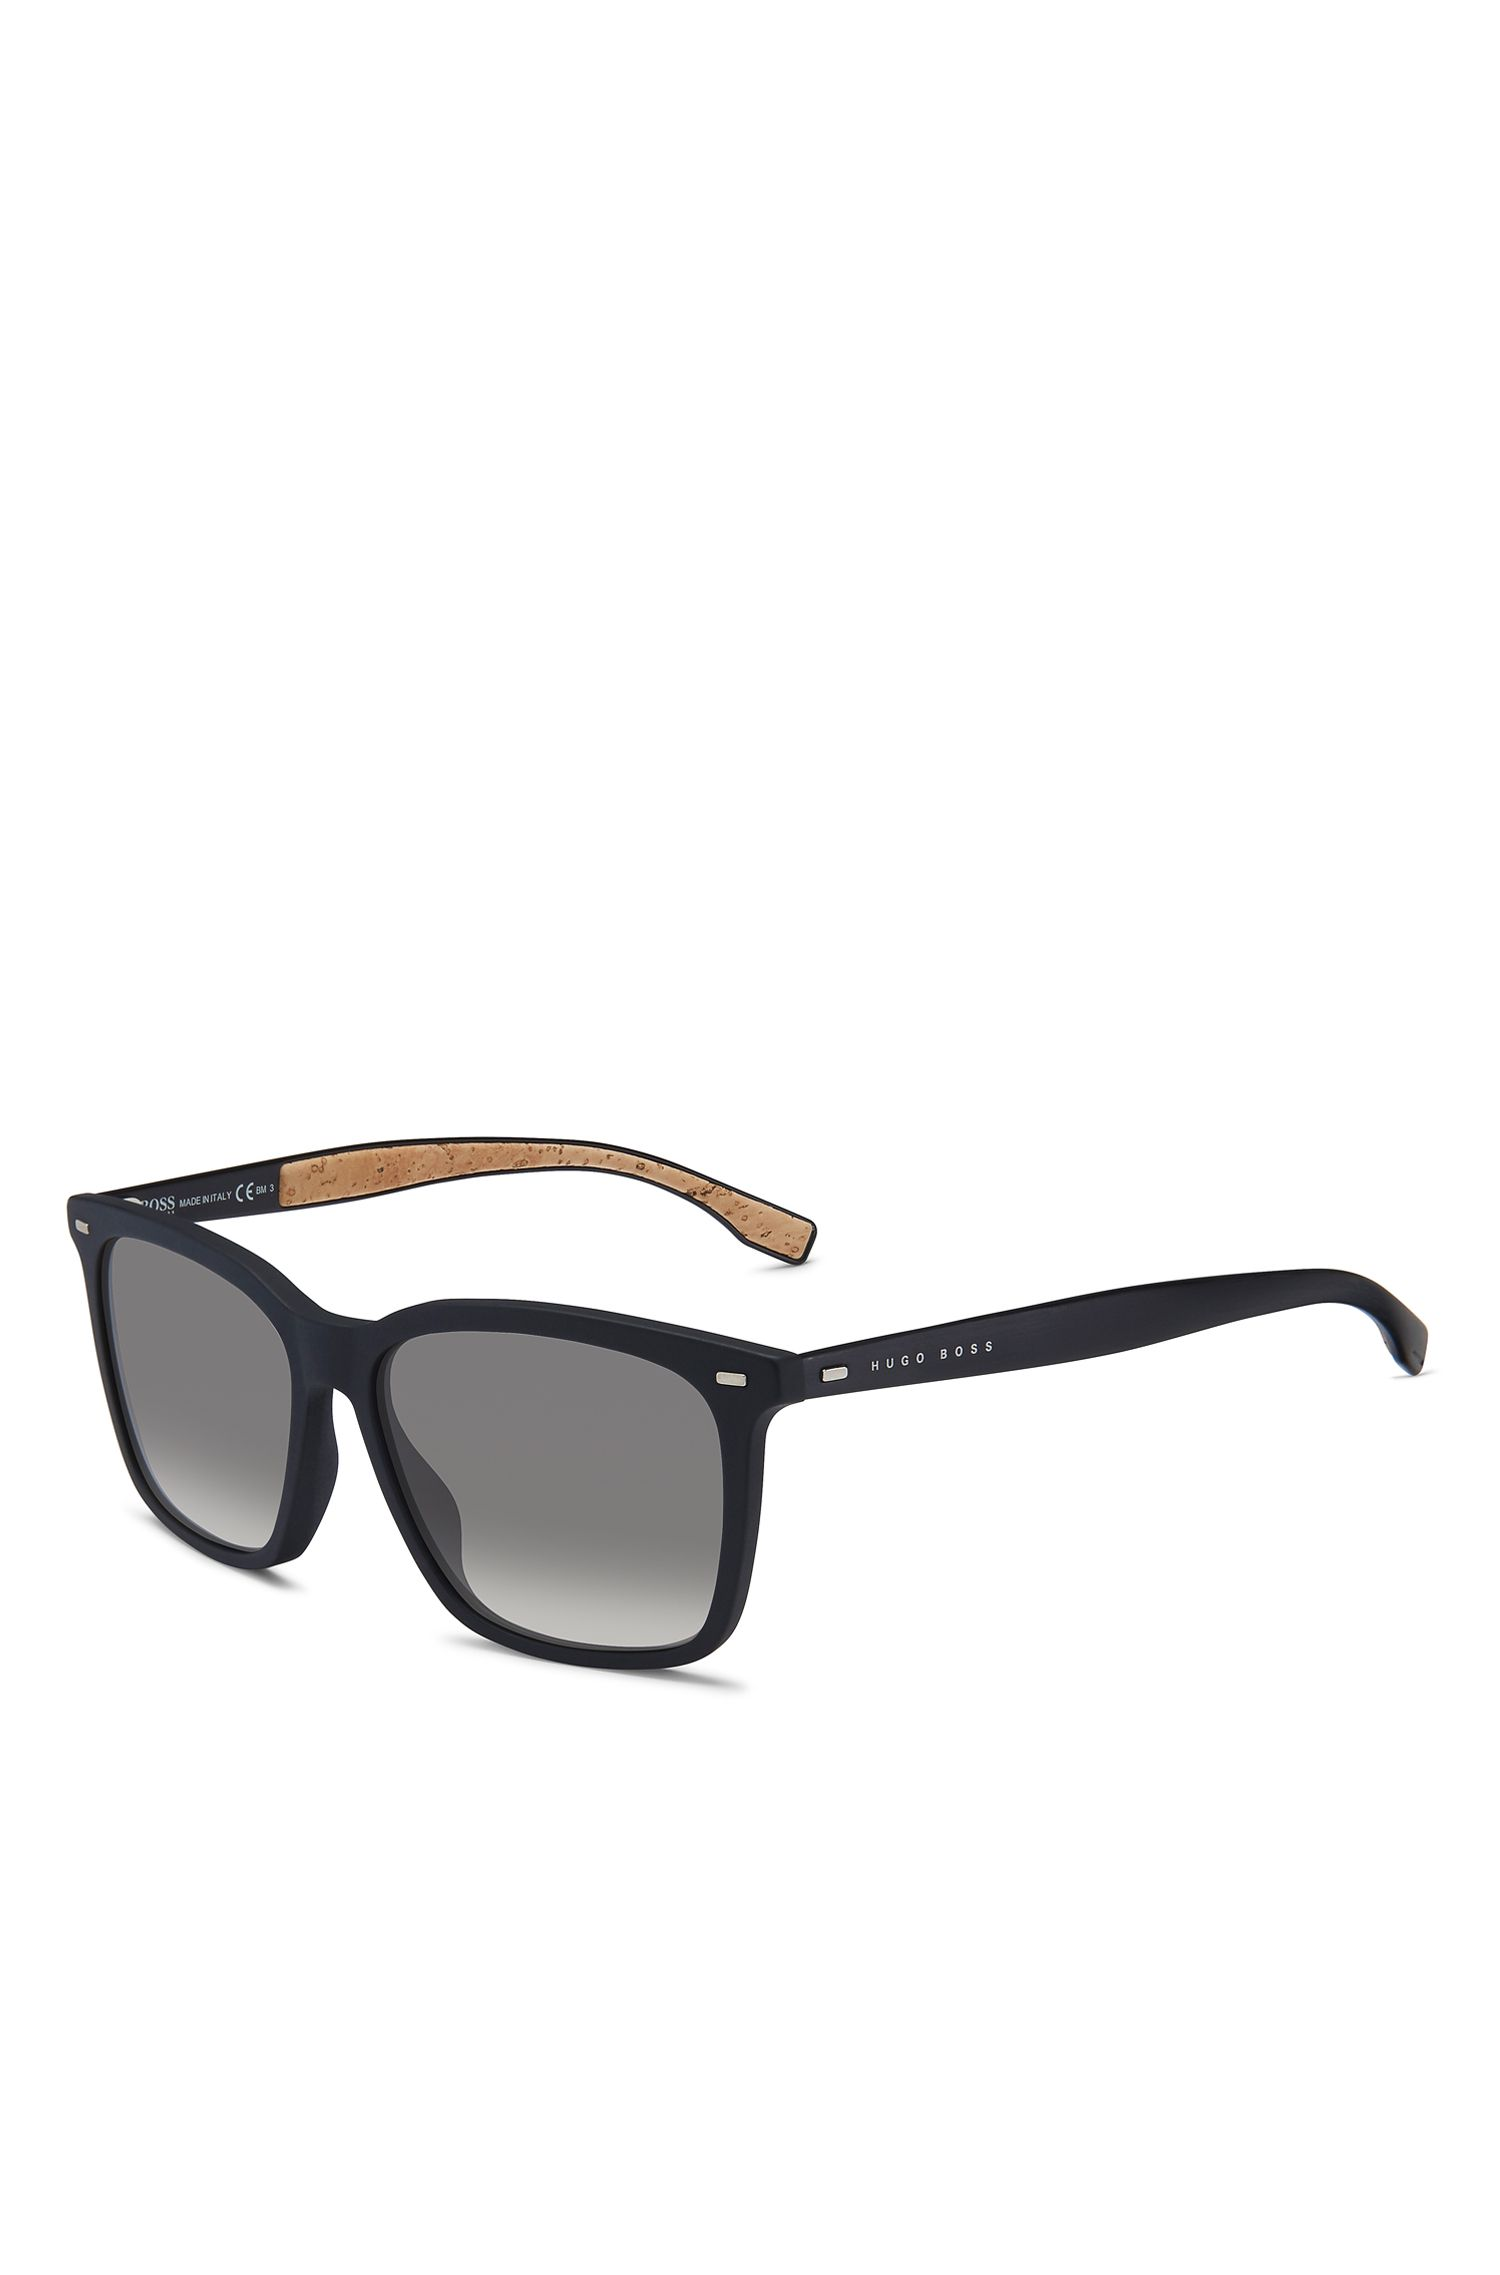 'BOSS 0883S' | Black Acetate Rectangular Sunglasses